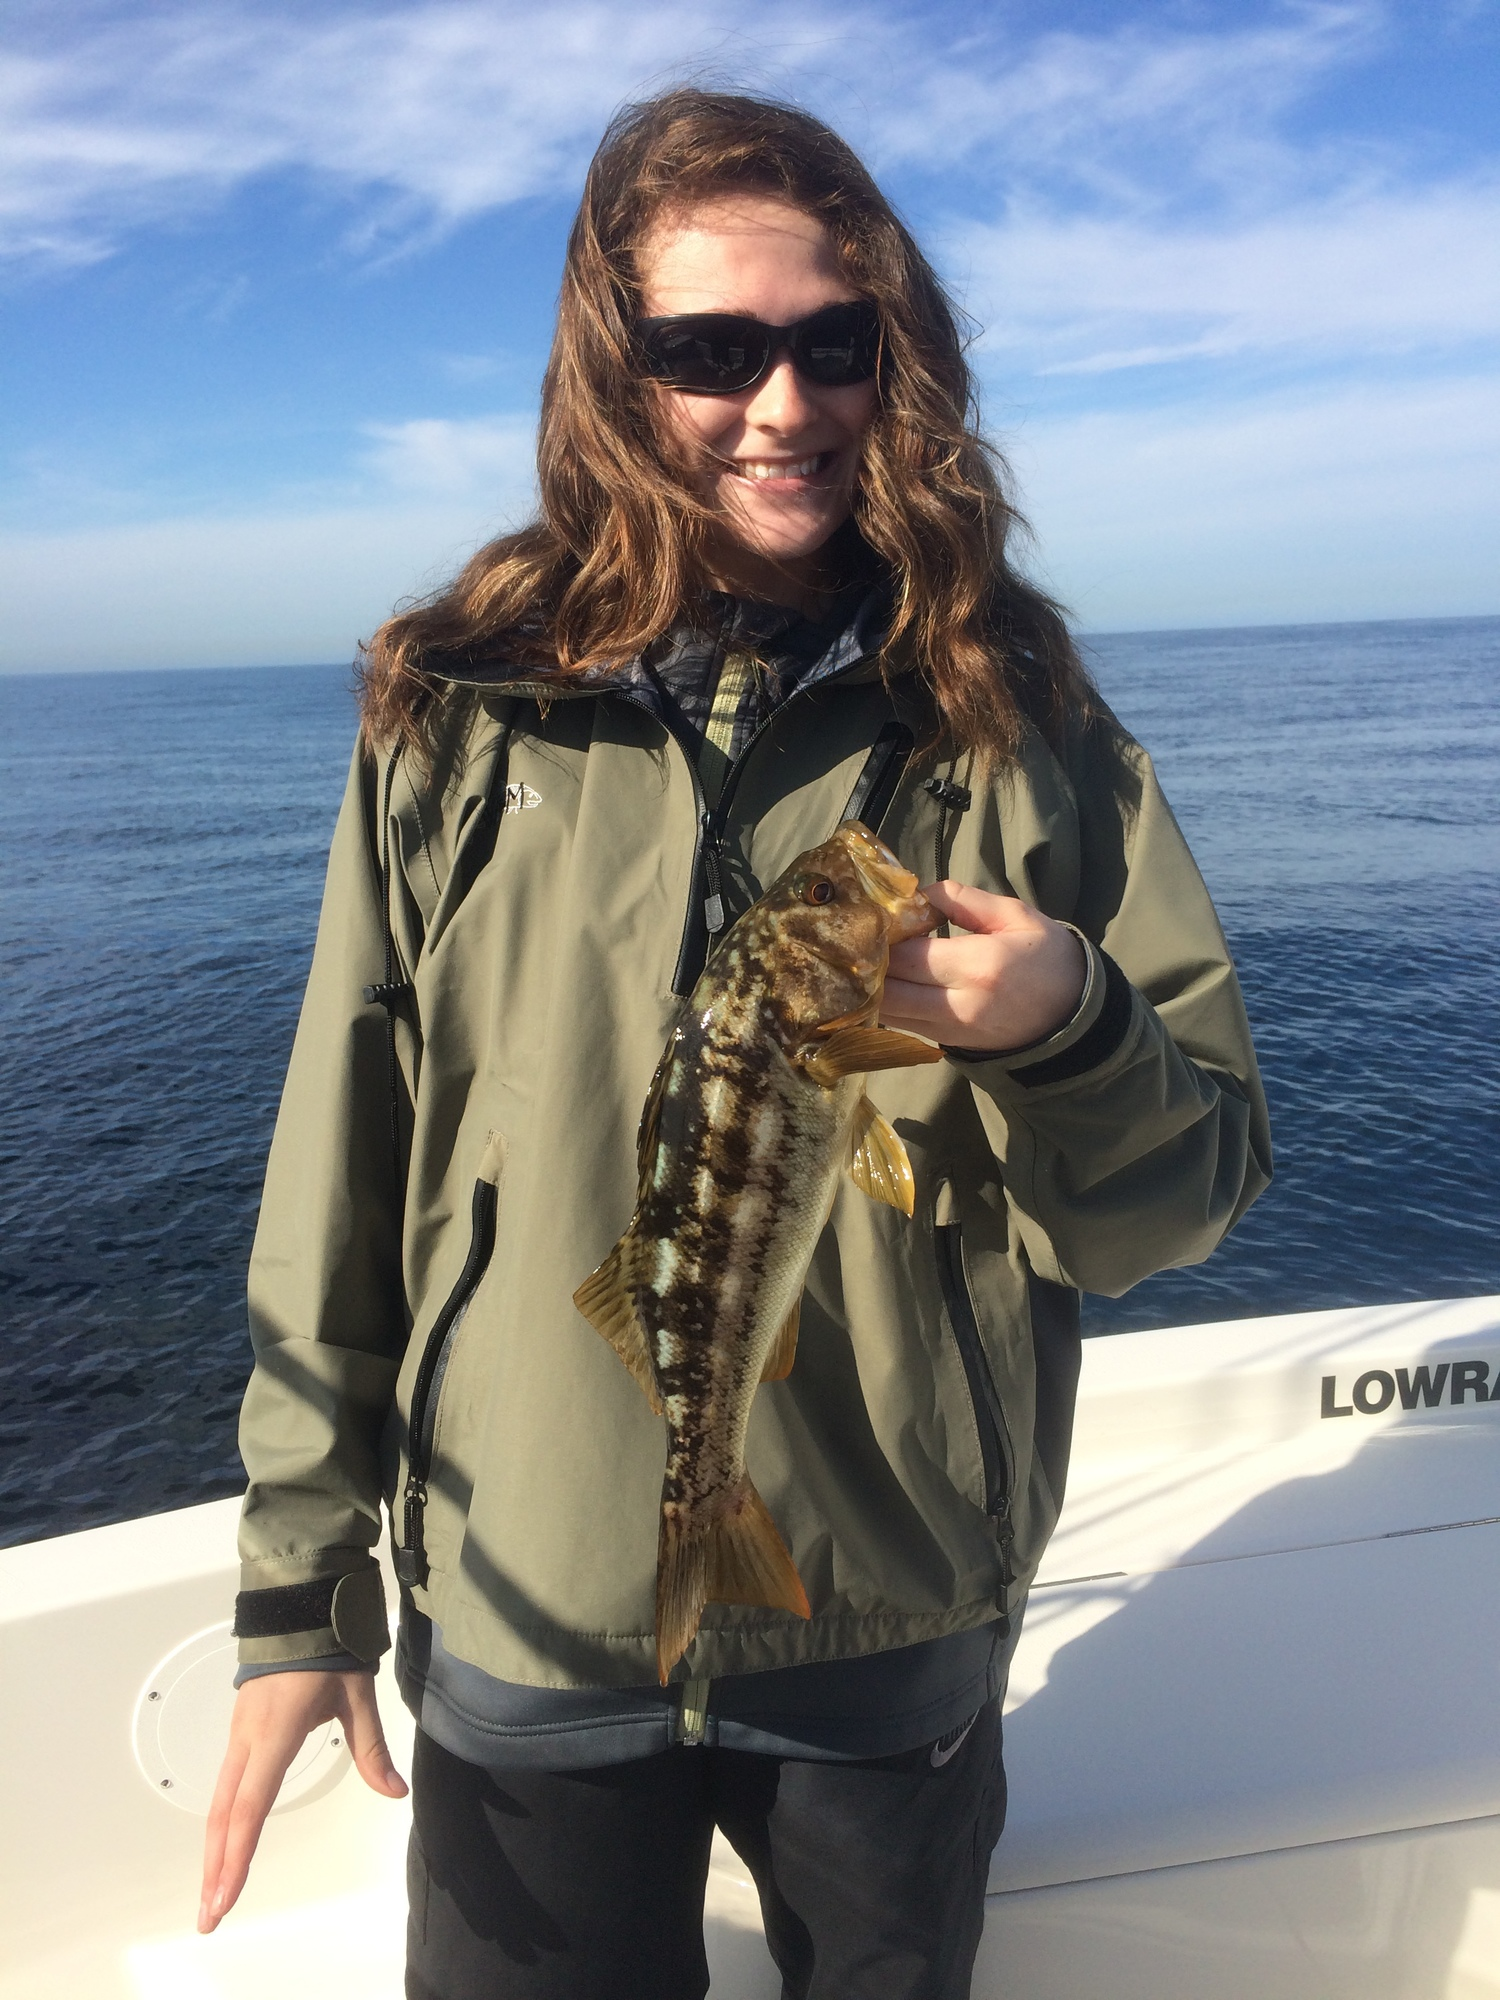 Brianna with another Calico Bass!